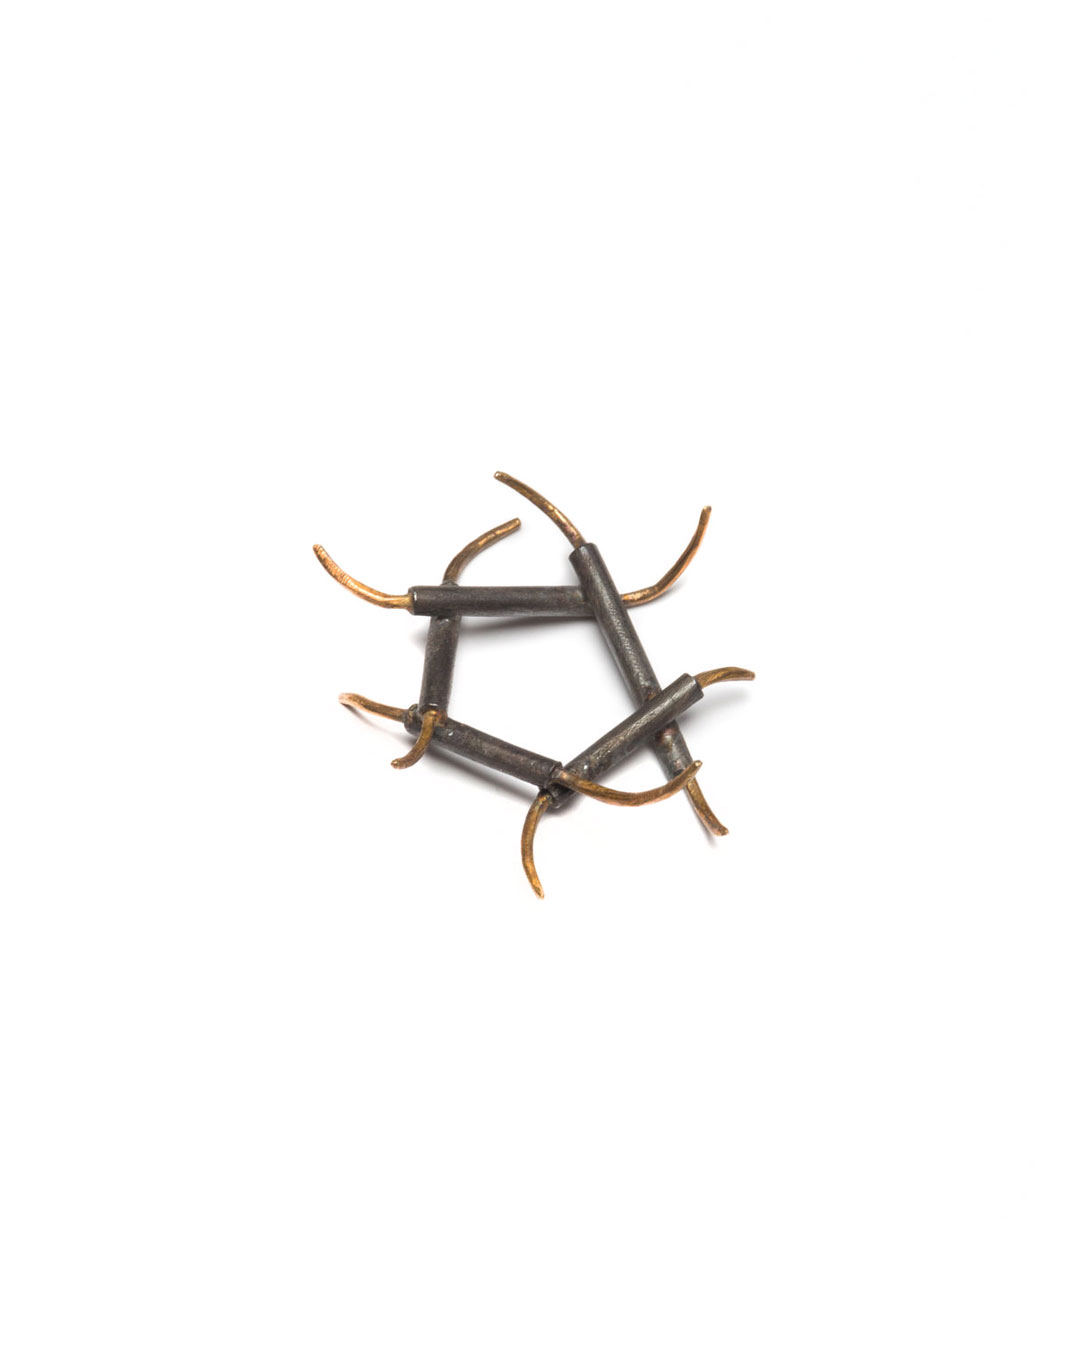 Winfried Krüger, untitled, 1996, ring; oxidised silver, gold, 40 x 40 mm, €605